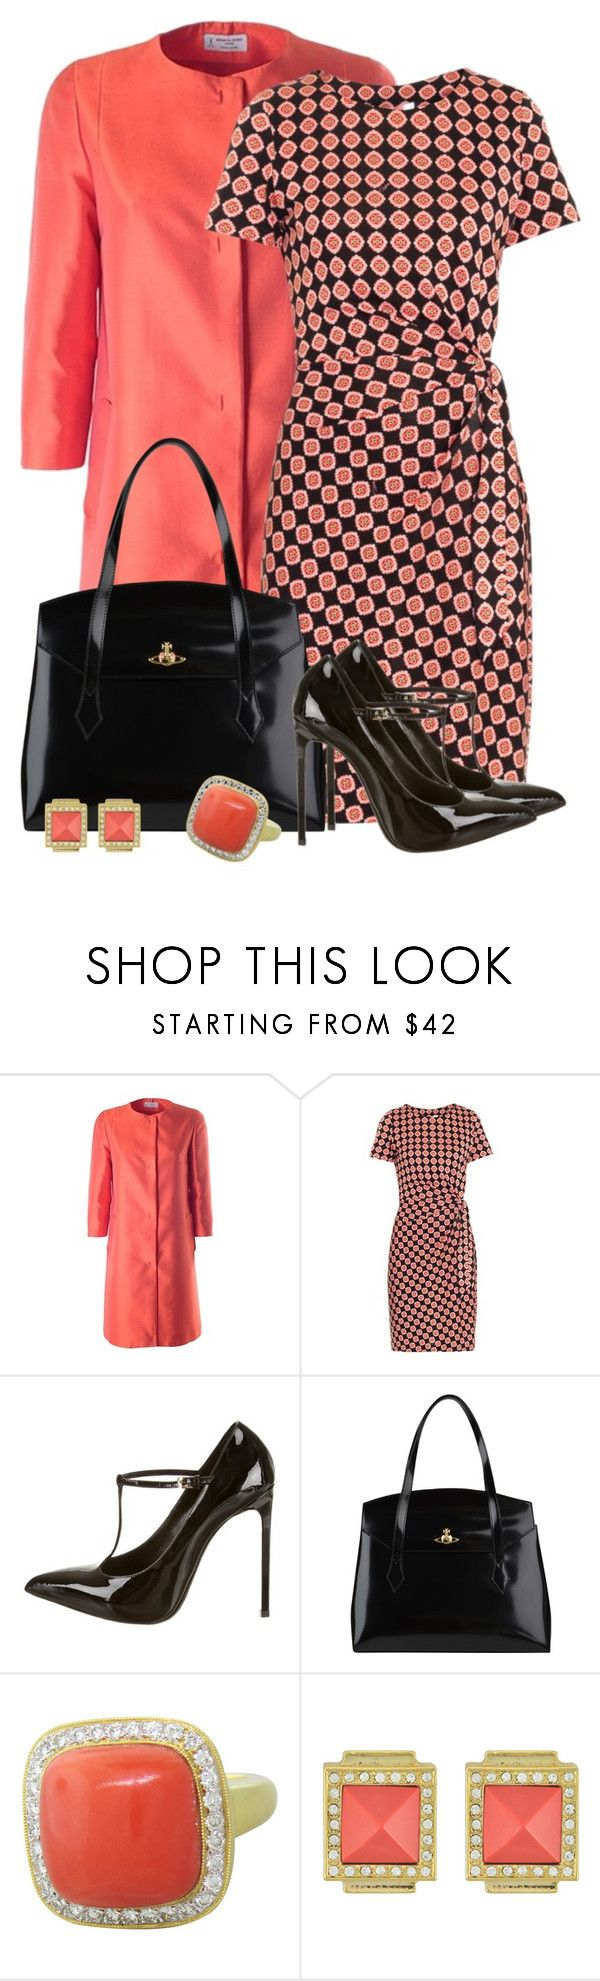 """Senga"" by rotwein ❤ liked on Polyvore featuring Alberto Biani, Diane Von Furstenberg, Yves Saint Laurent, Vivienne Westwood and Sequin"